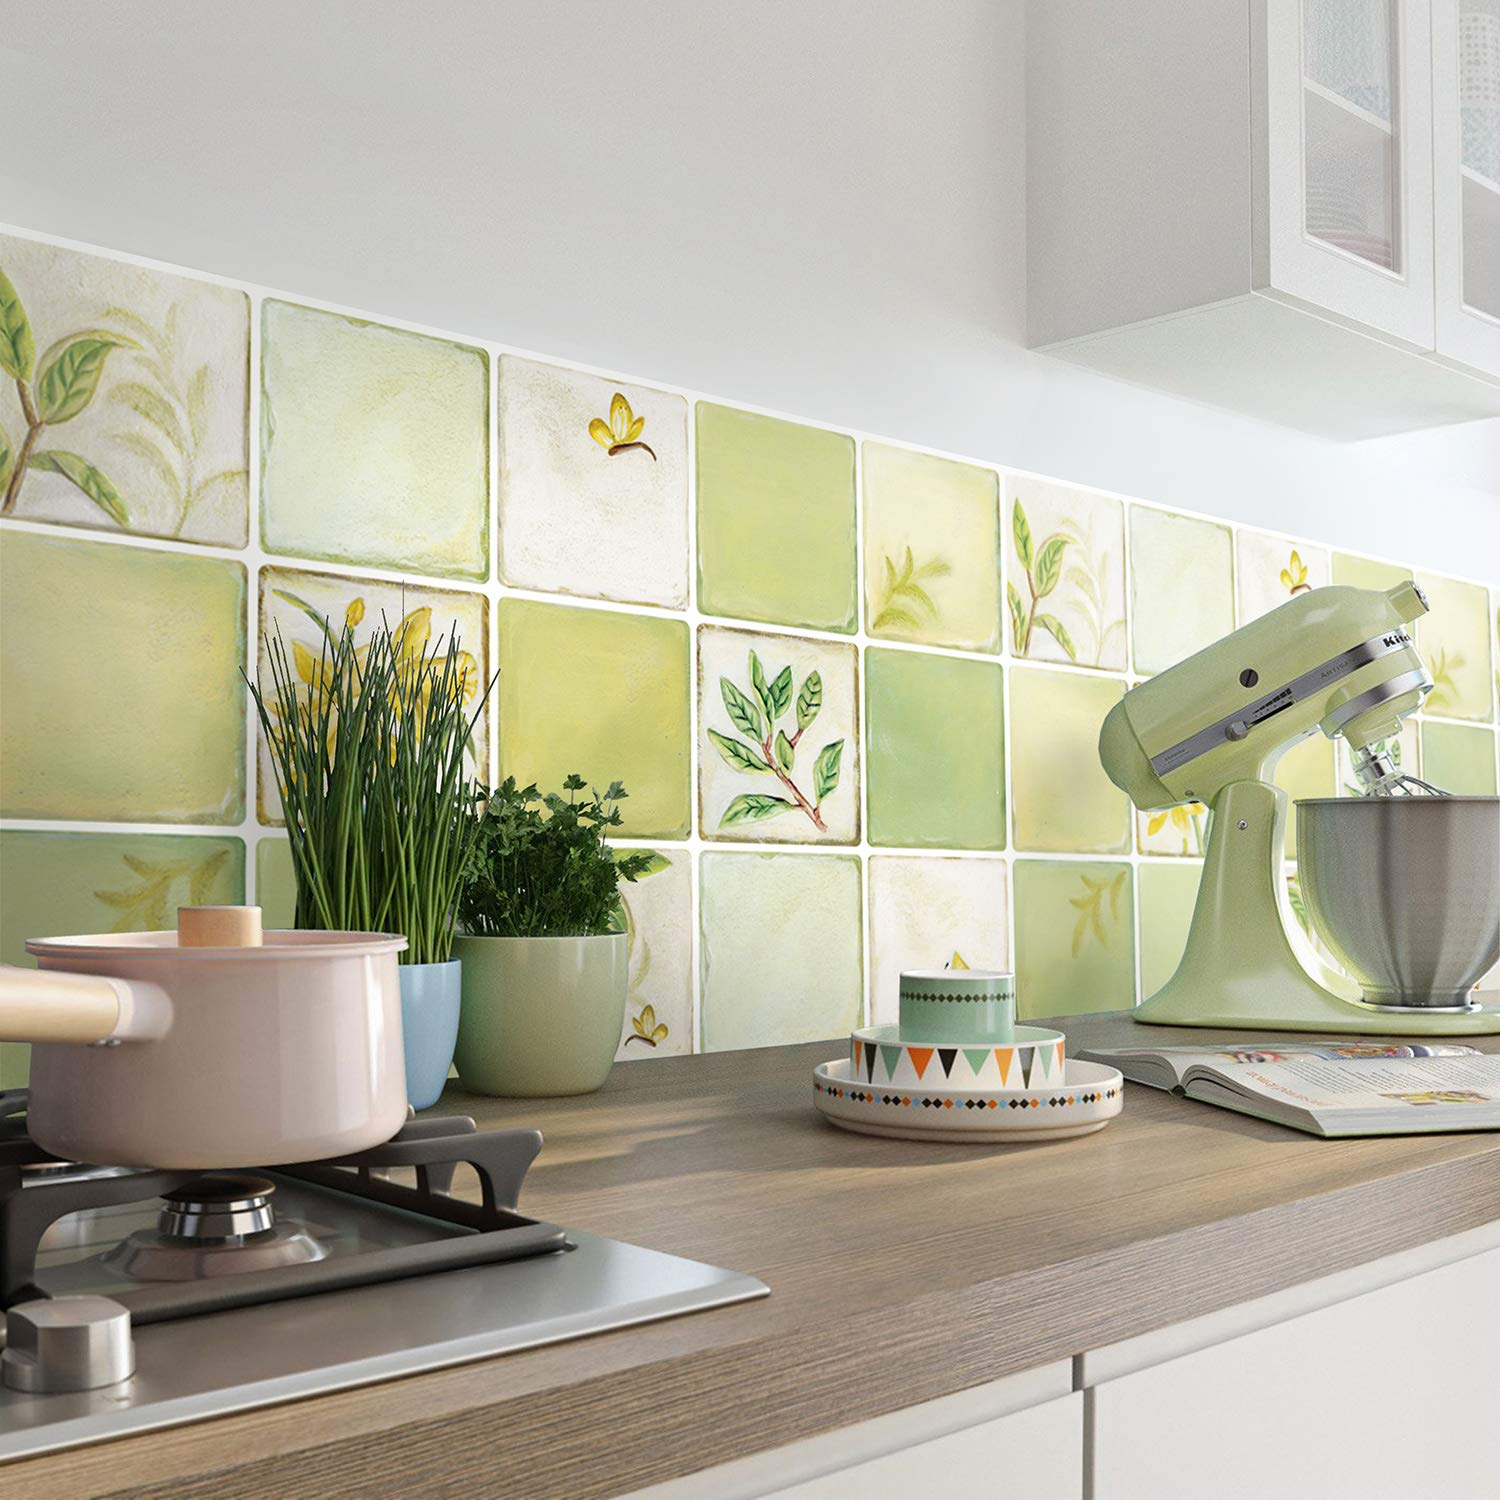 Simply Works Imports Peel and Stick Tile Backsplash   Kitchen or Bathroom Decorative Wall Covering  Removable Easy to Install   2 Pack Lilies Design